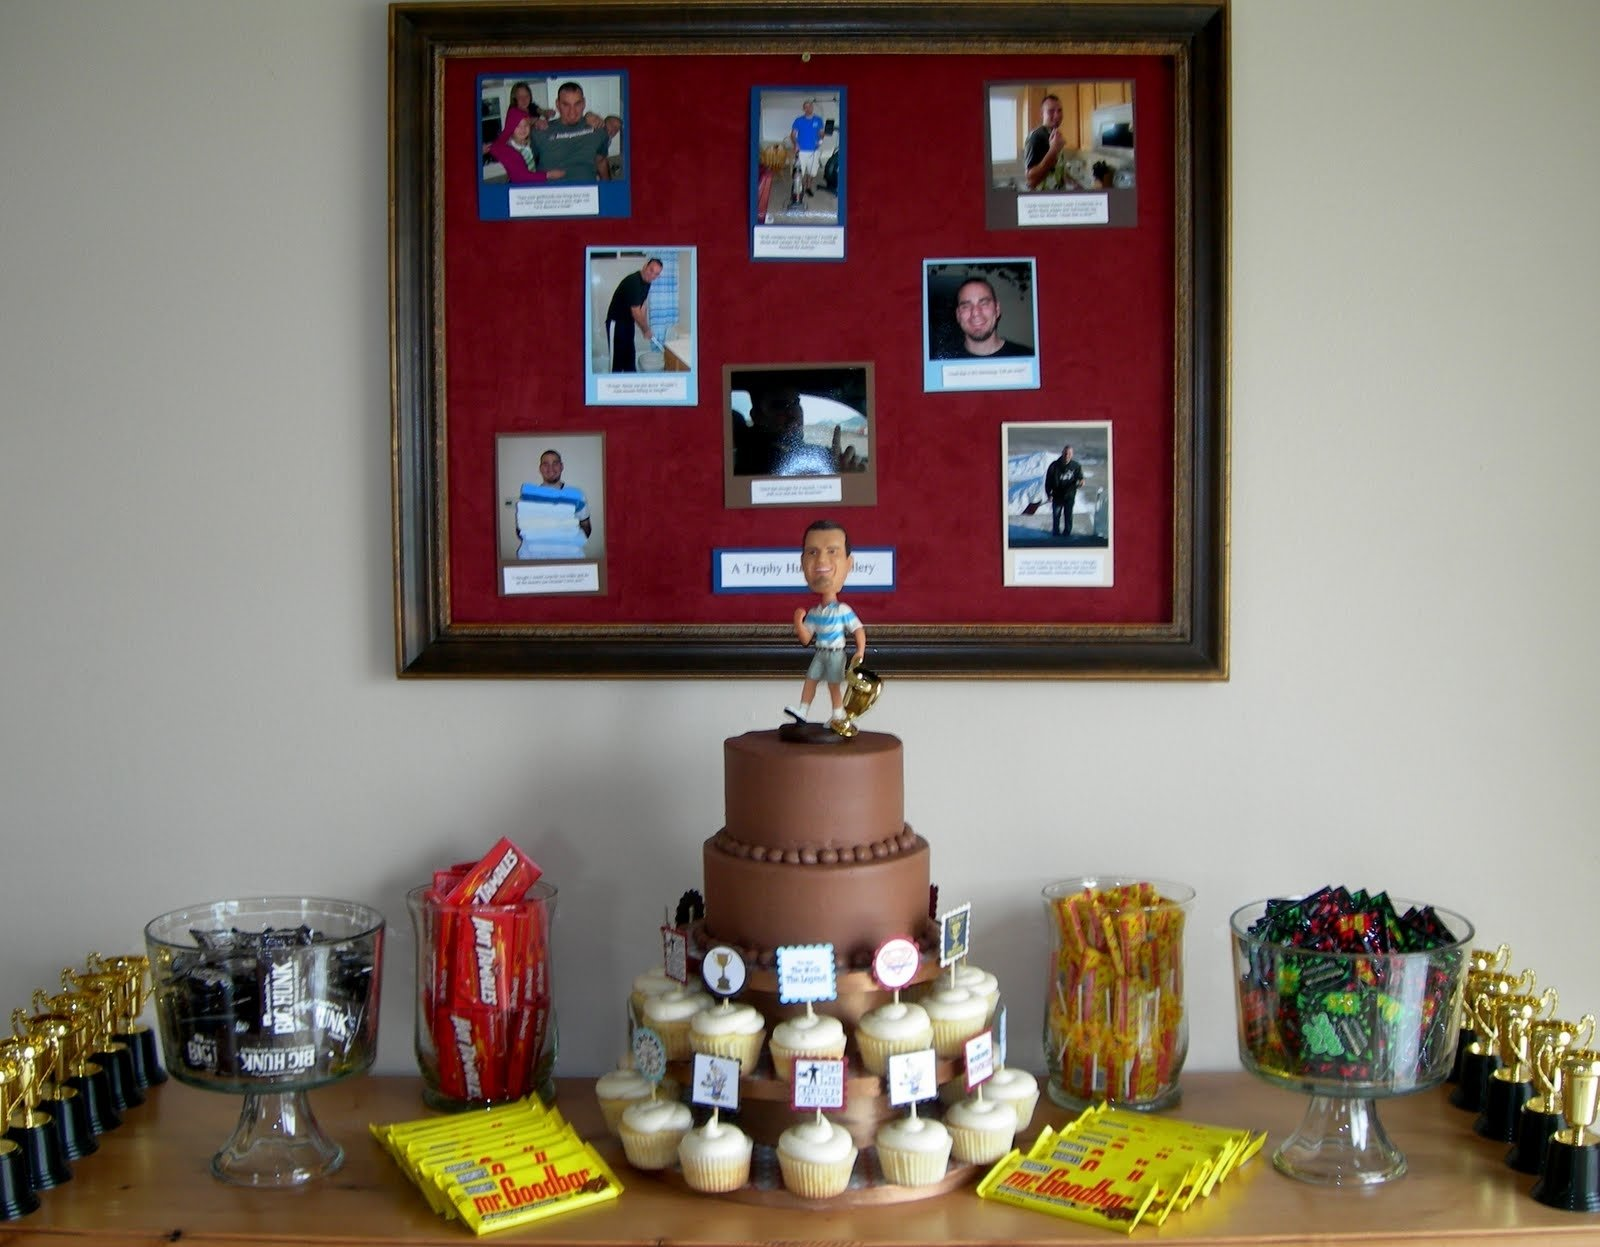 10 Stylish Birthday Party Ideas For Husband sweeten your day events 30th birthday party 3 2020